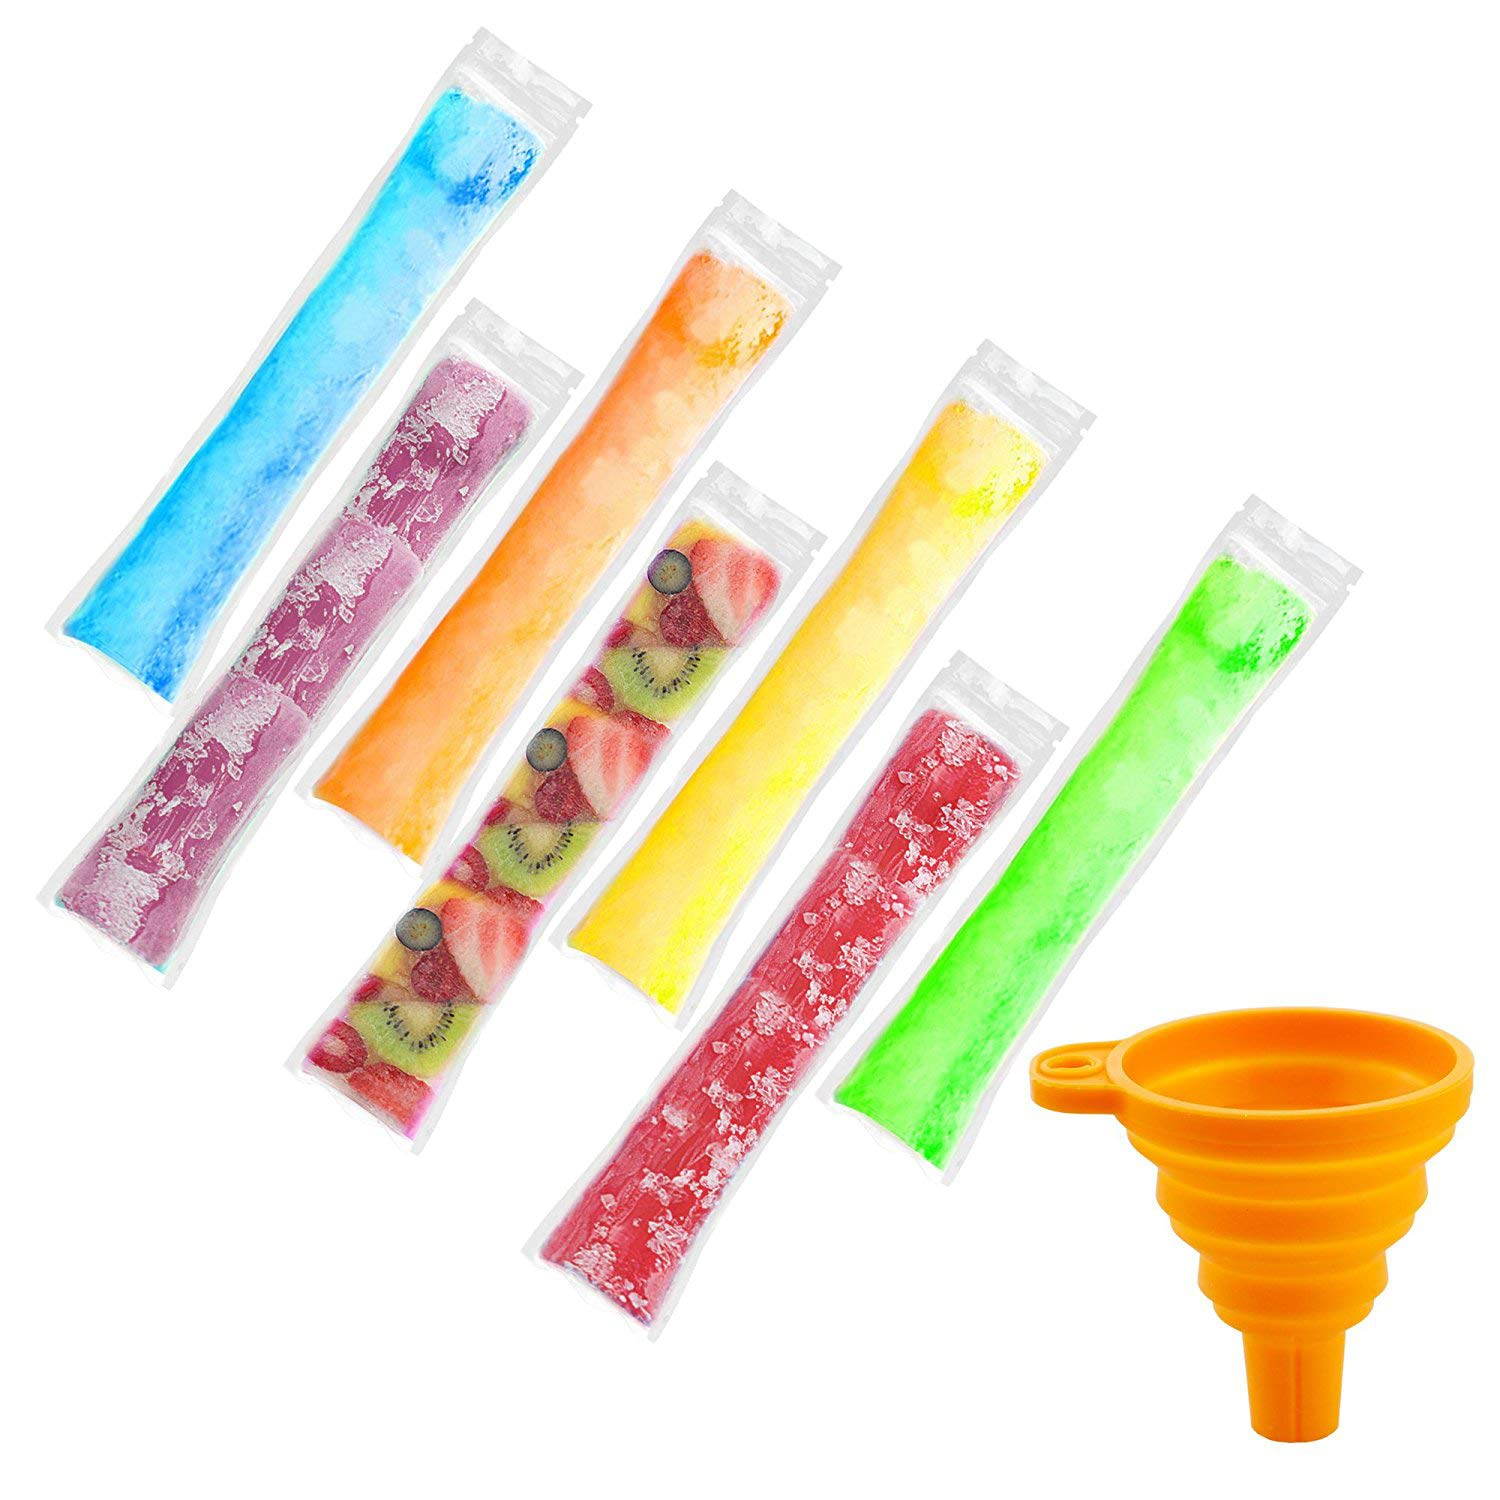 160 Pieces Ice Popsicle Molds Bags,Zip-Top Disposable DIY Ice Pop Mold Bags for Gogurt, Ice Candy, Otter Pops or Freeze Pops-Comes With A Orange Color Funnel